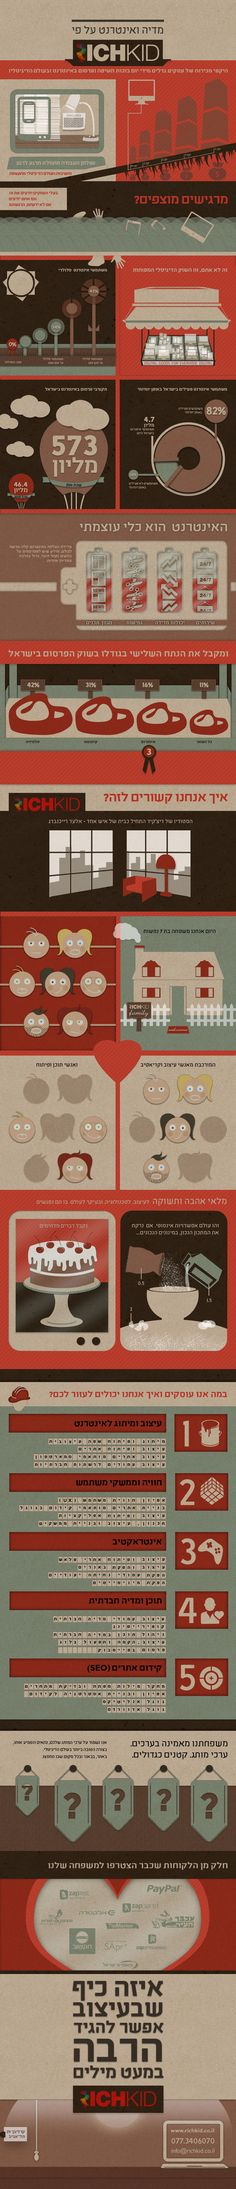 don't know this language, but love the graphic nature of this infographic